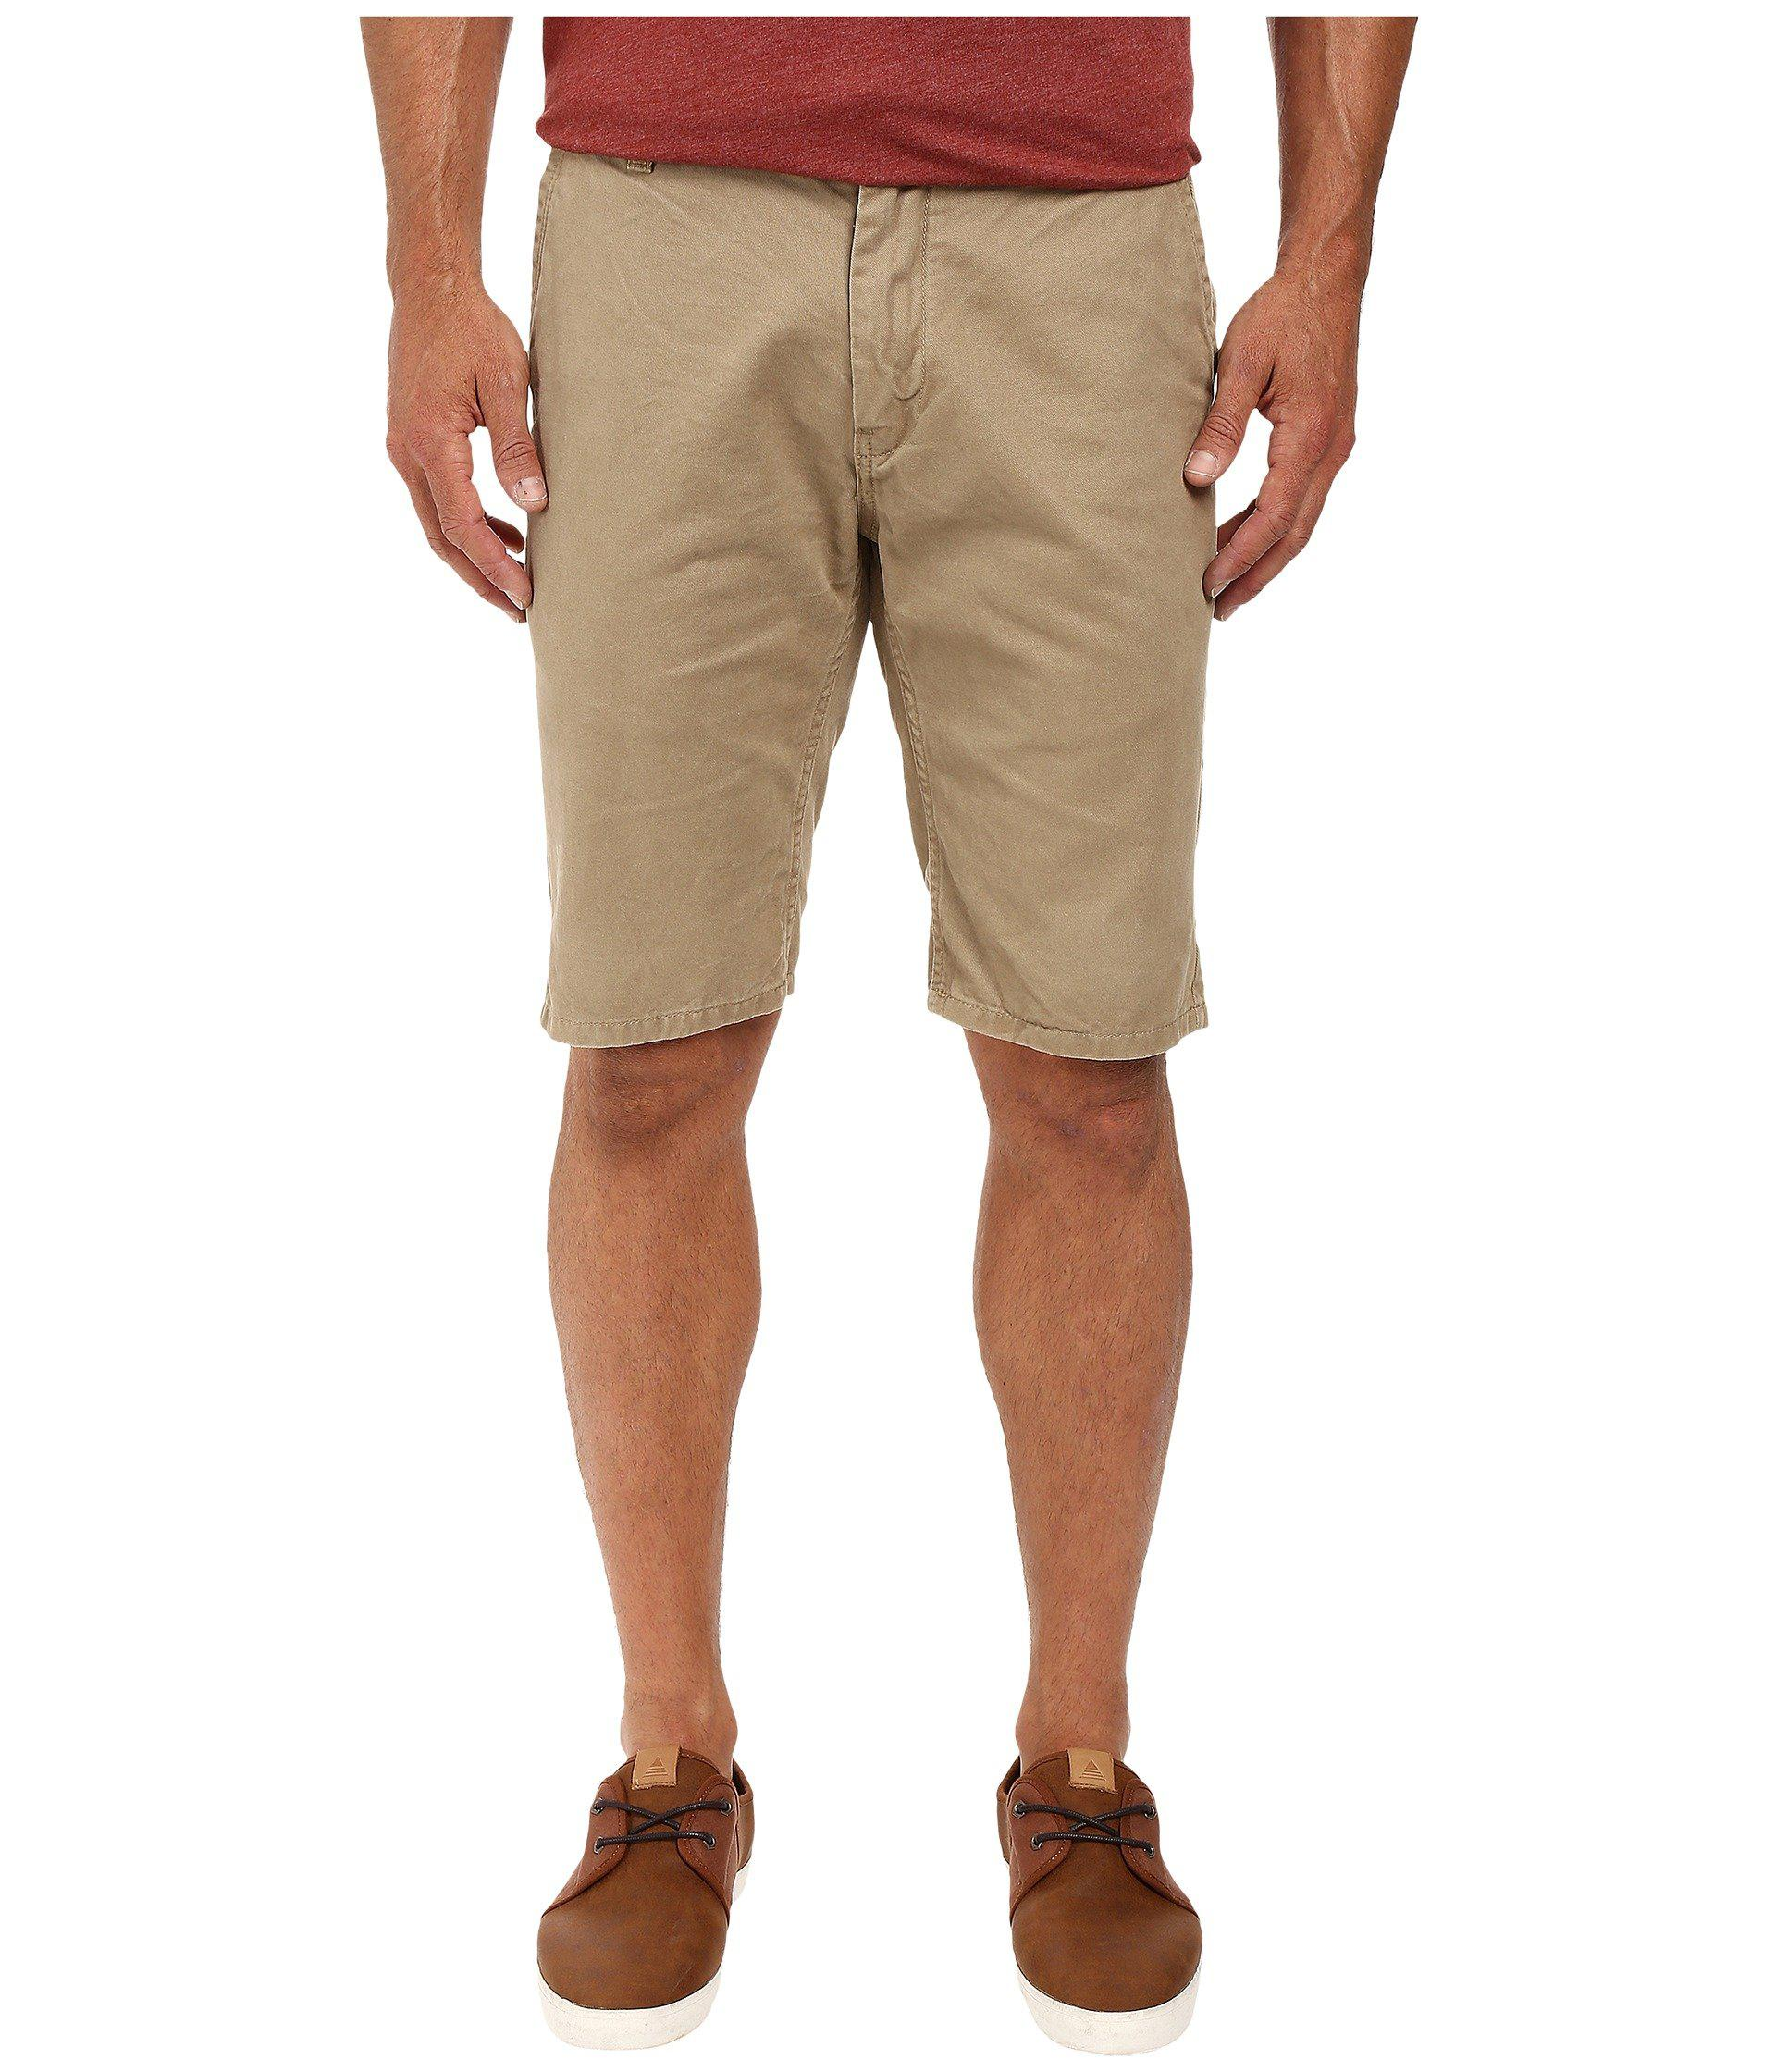 Chino Men's Shorts In Elmwood Lyst Quiksilver Everyday Dyxfciuvwq oxBedC